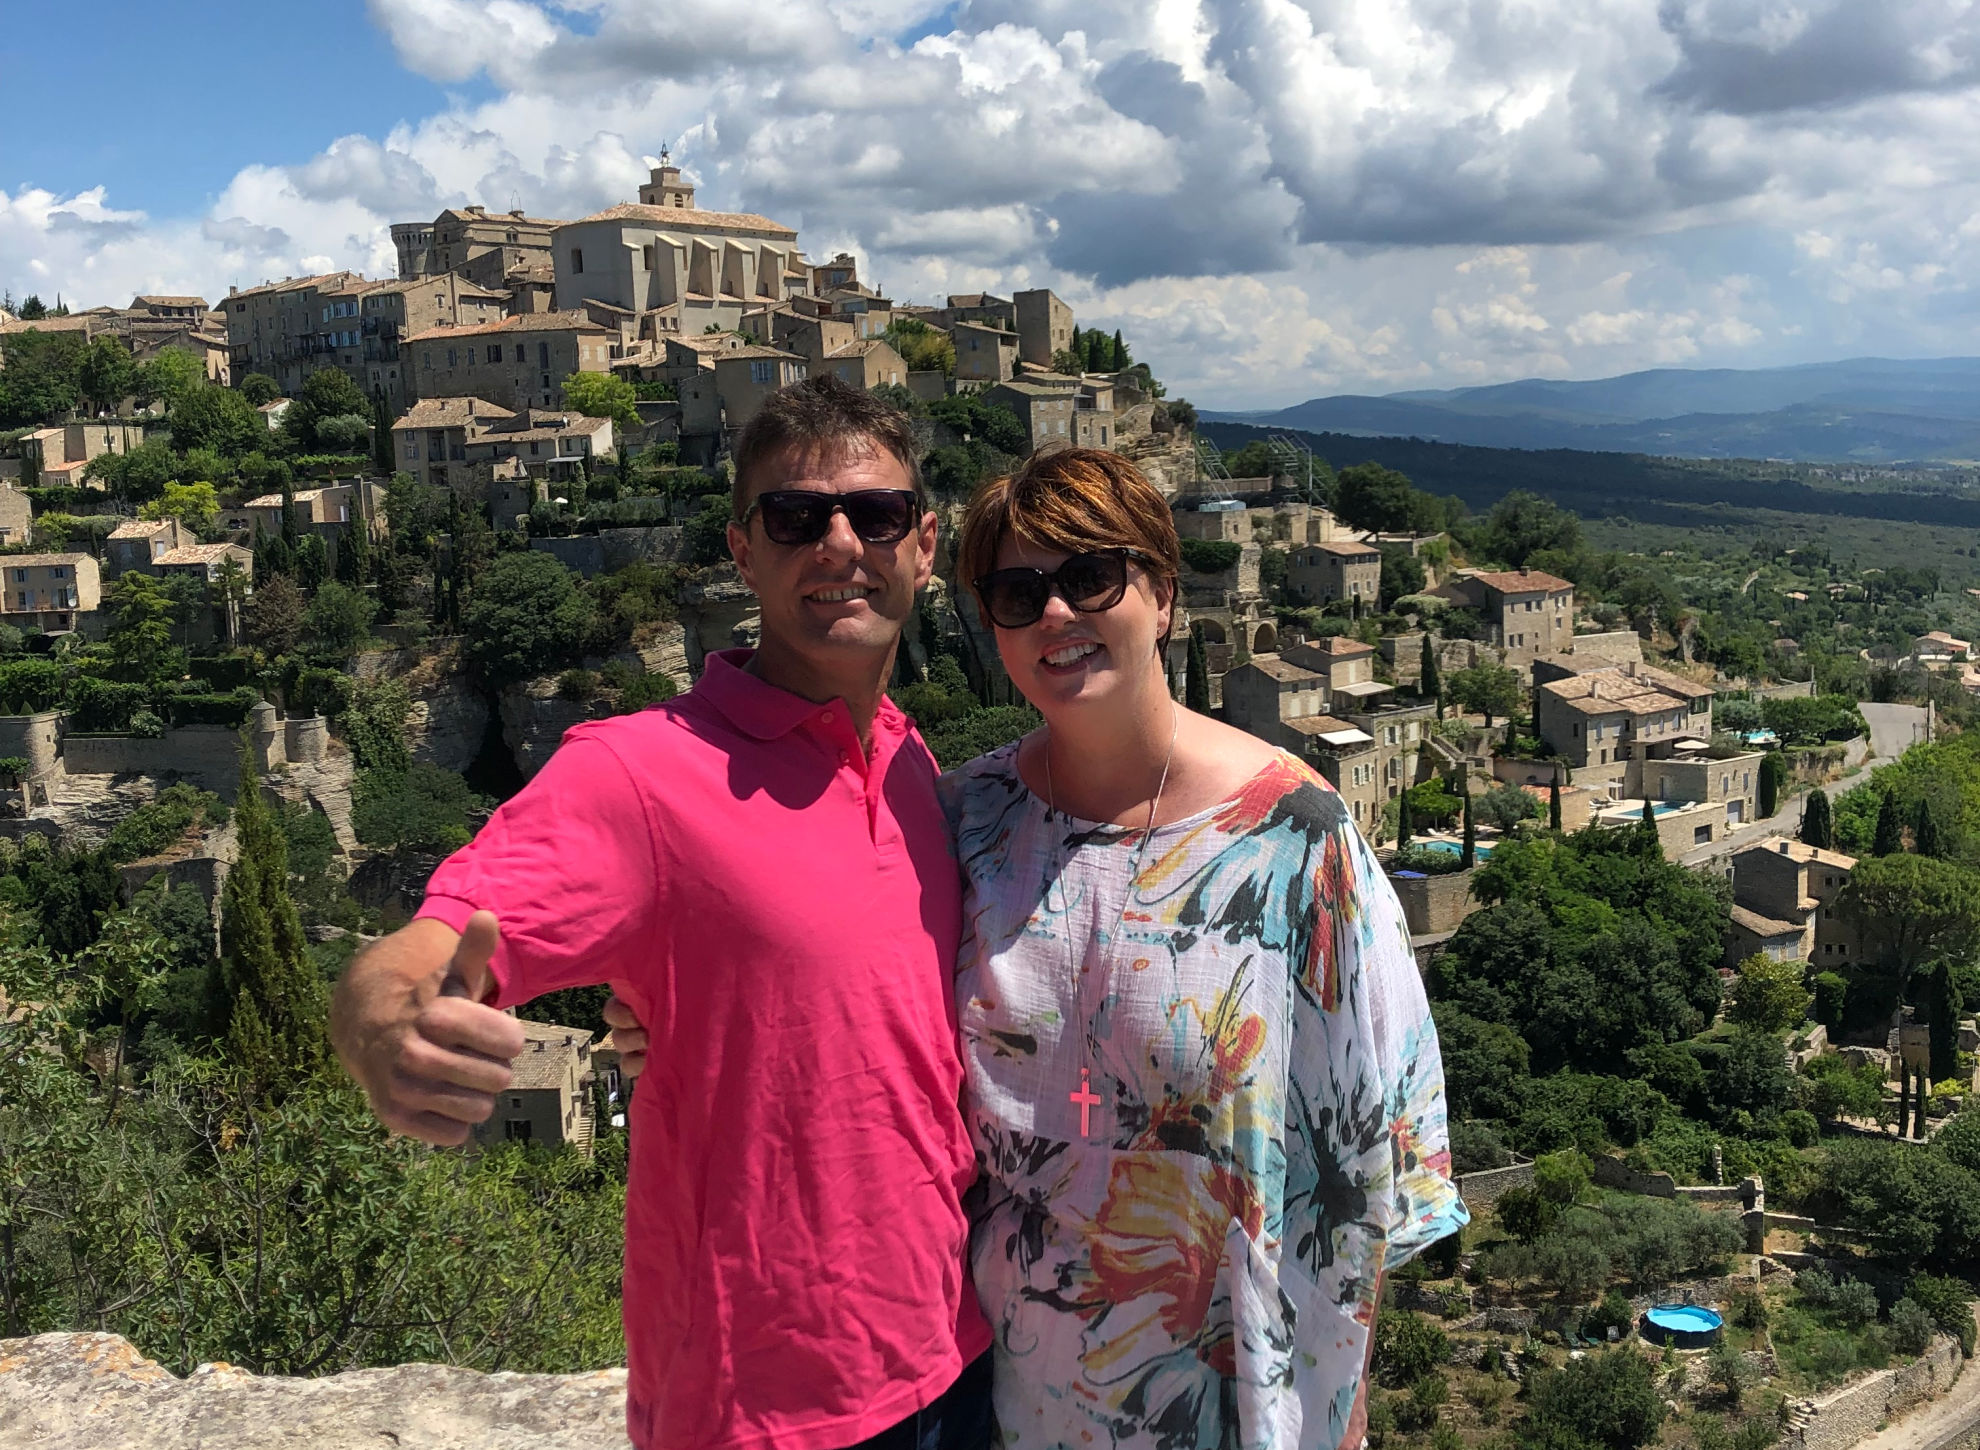 Alex & Denise at the famous Gordes viewpoint